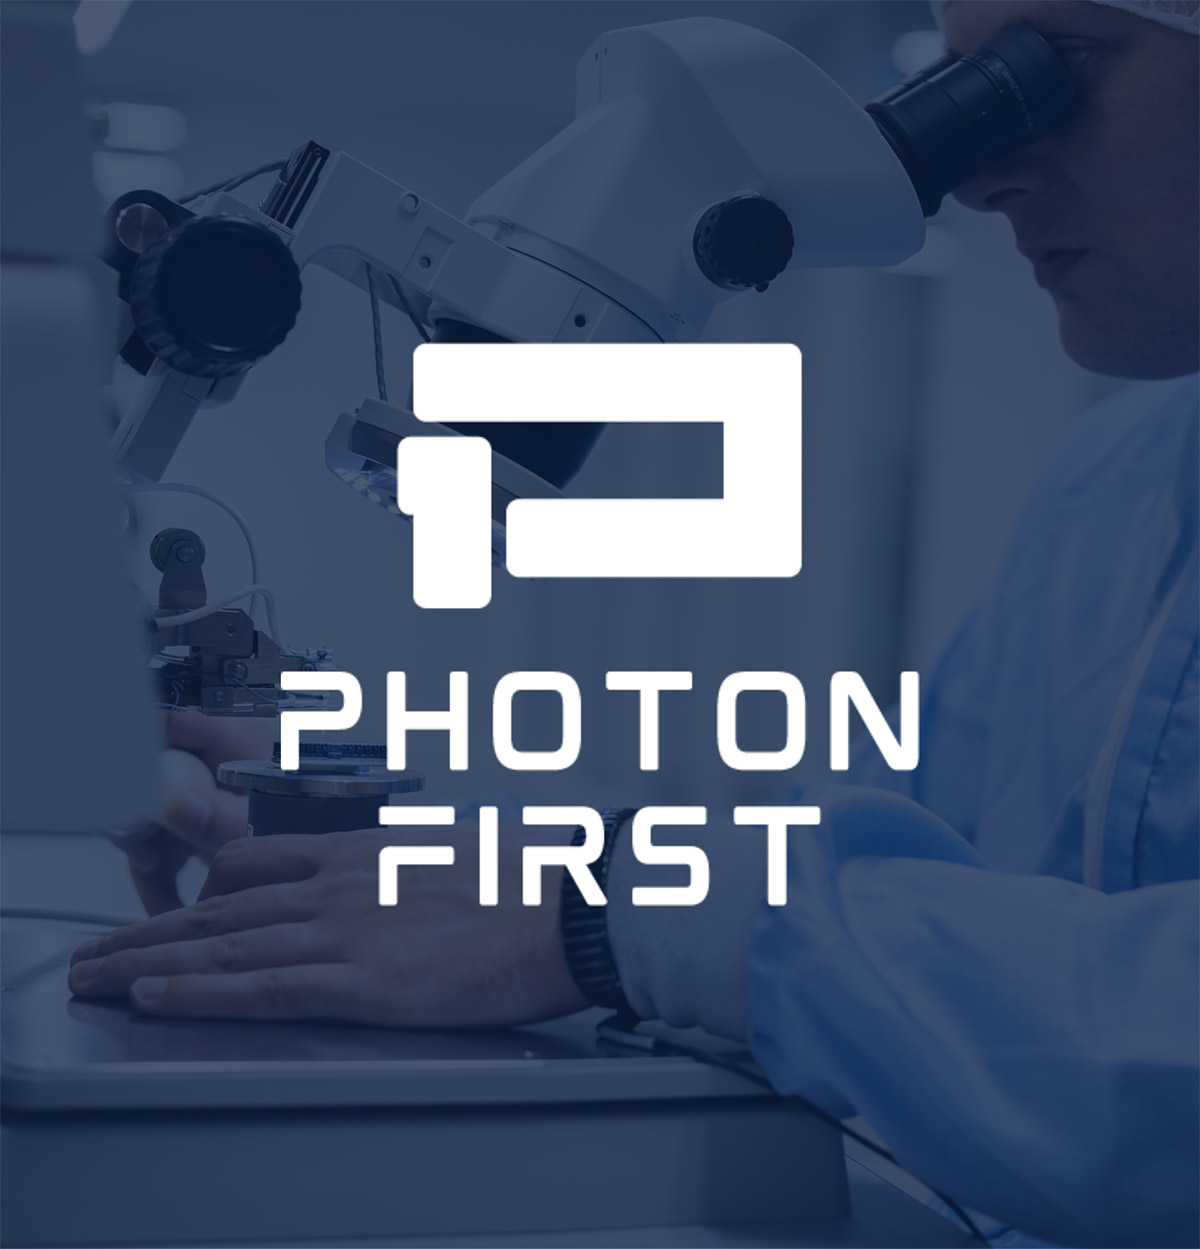 Jan 2021 - Technobis IPS becomes Photonfirst